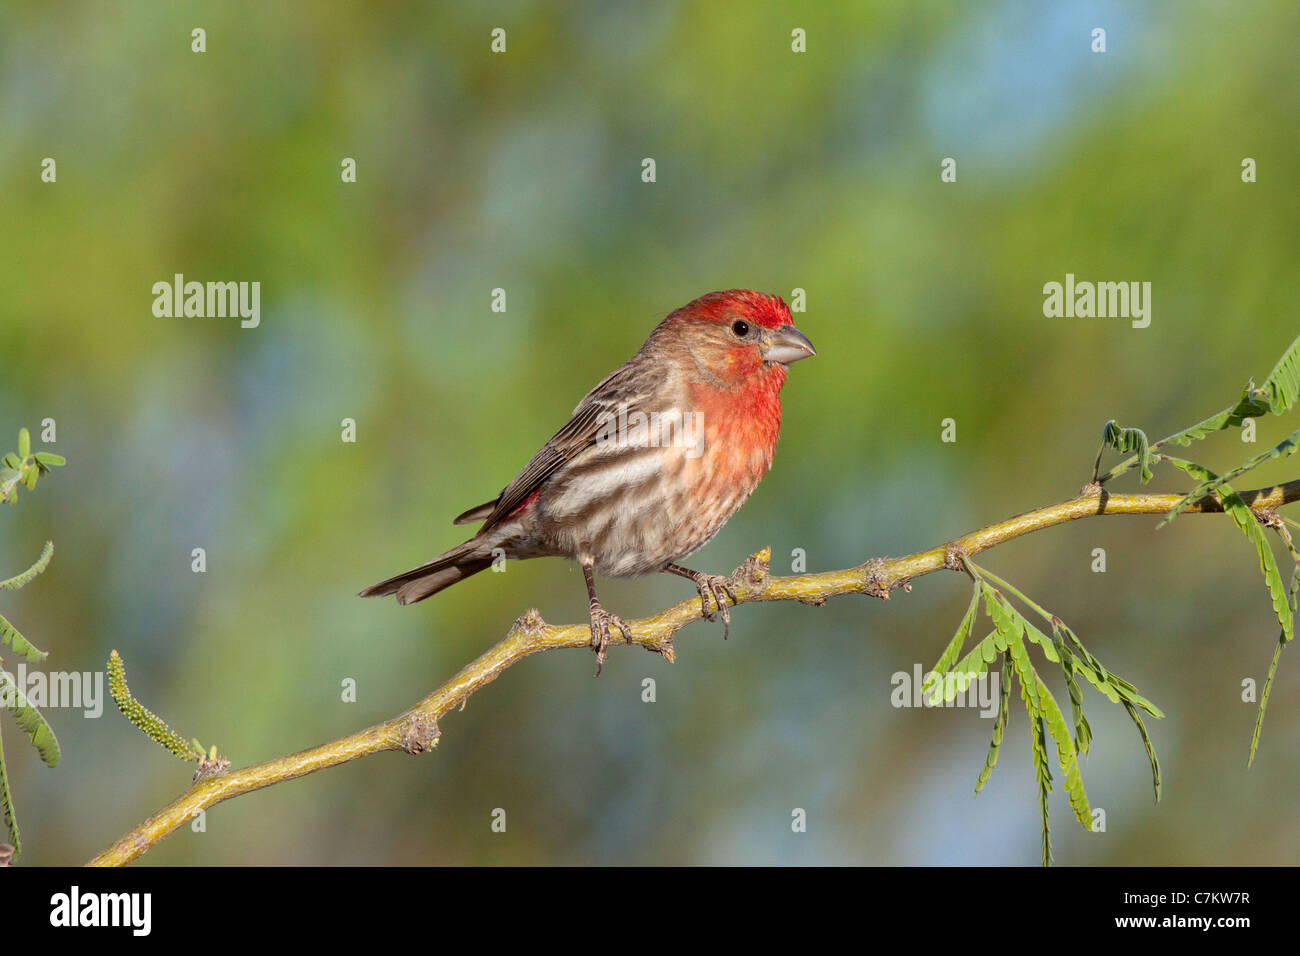 House Finch Carpodacus mexicanus Tucson, Arizona, United States 16 April Adult Male Fringillidae - Stock Image